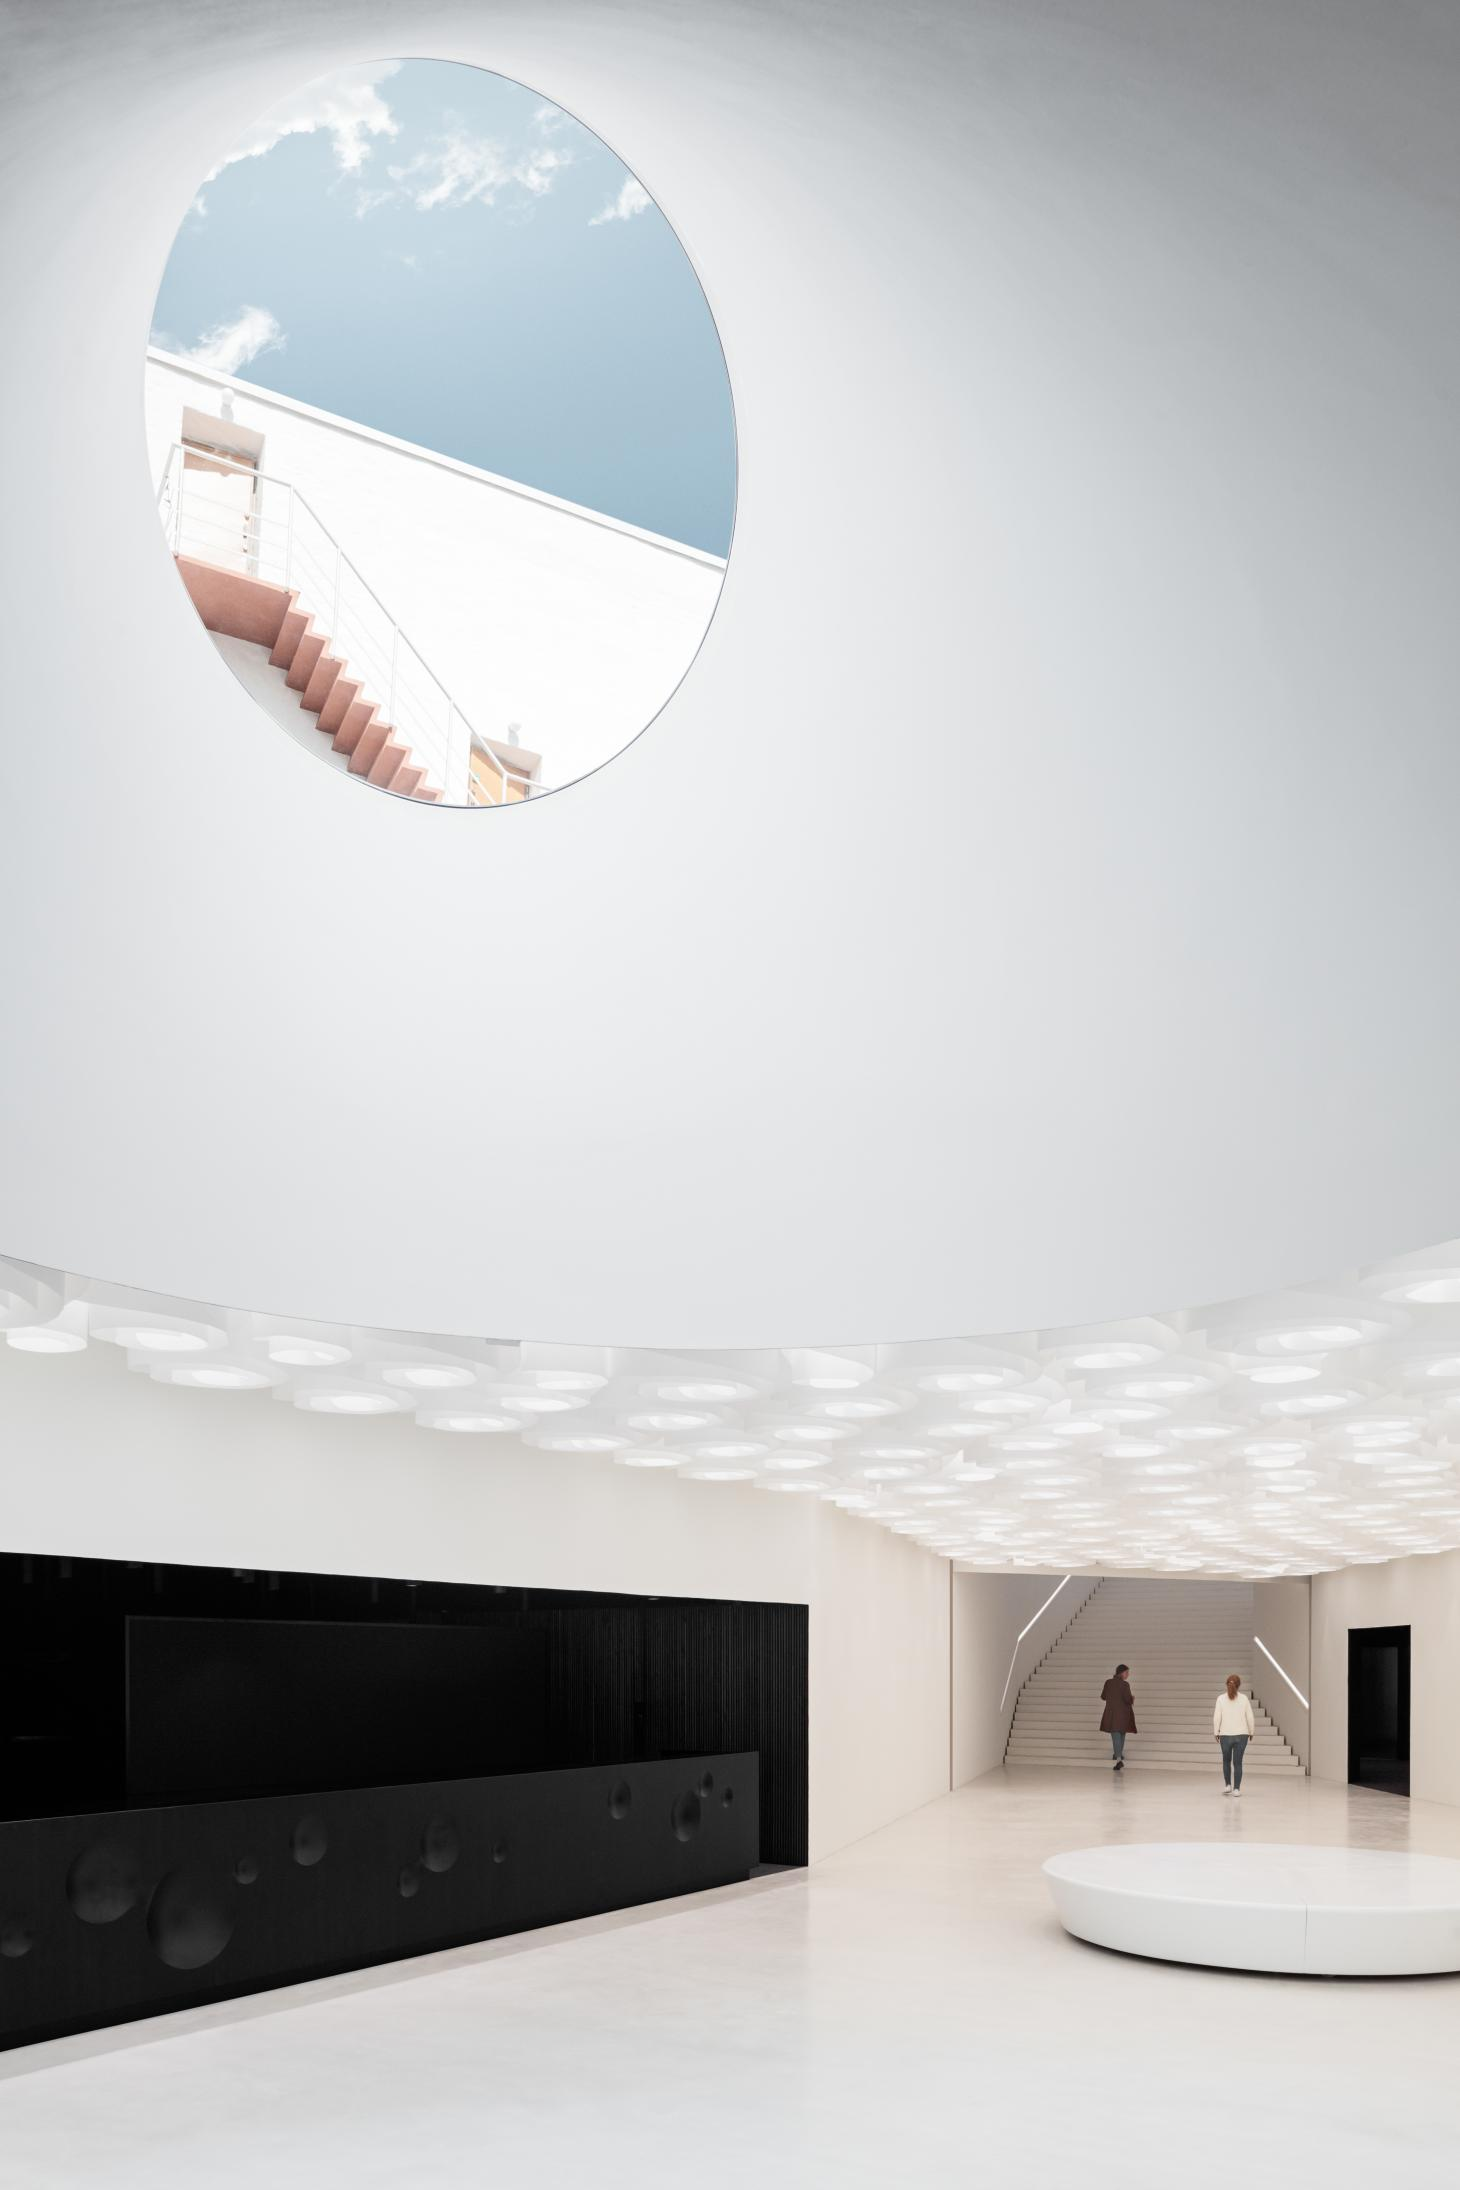 amos rex by JKMM architects opens